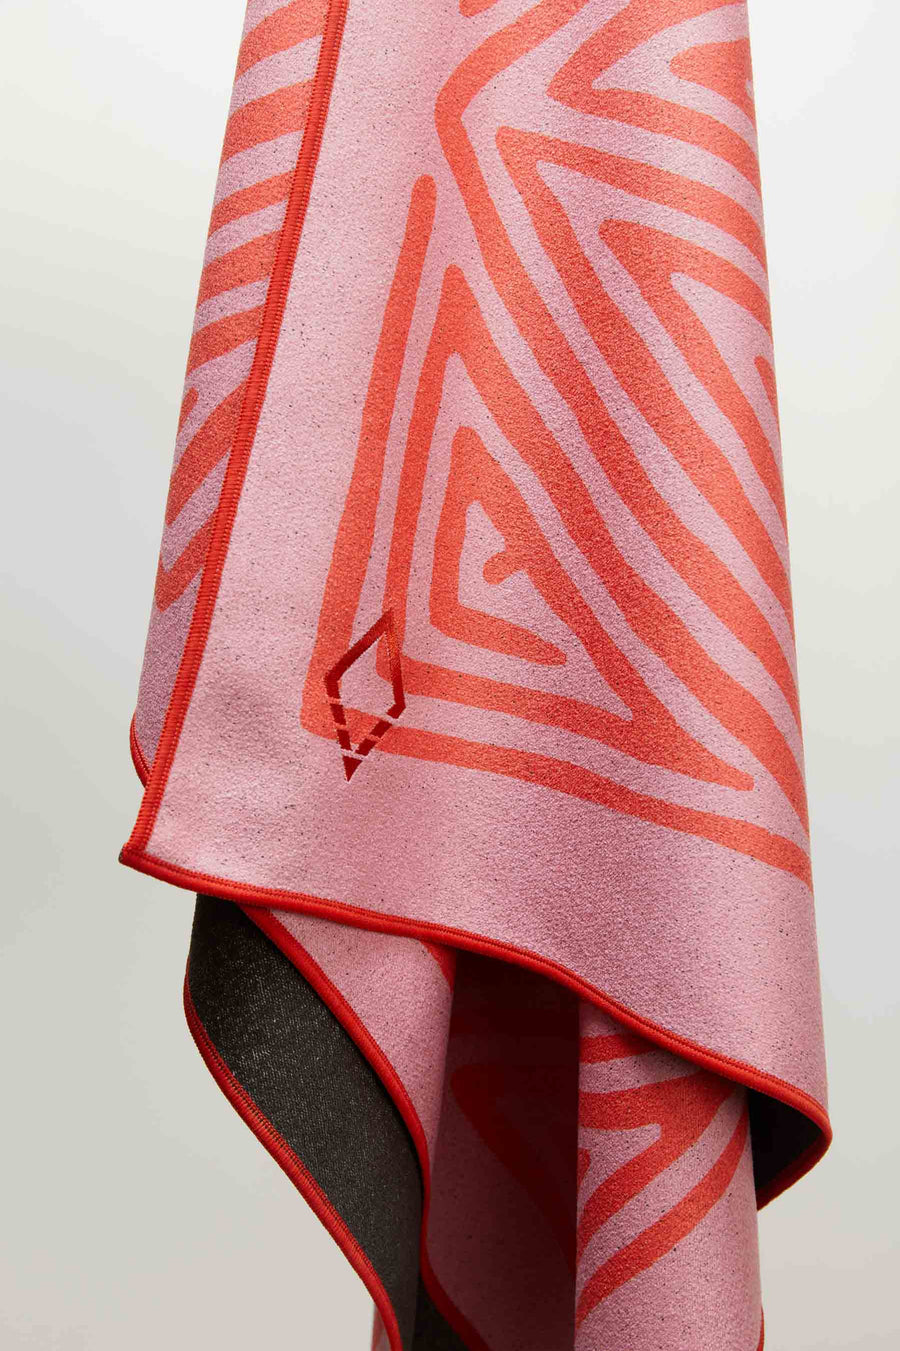 La Playa Grapefruit Towel